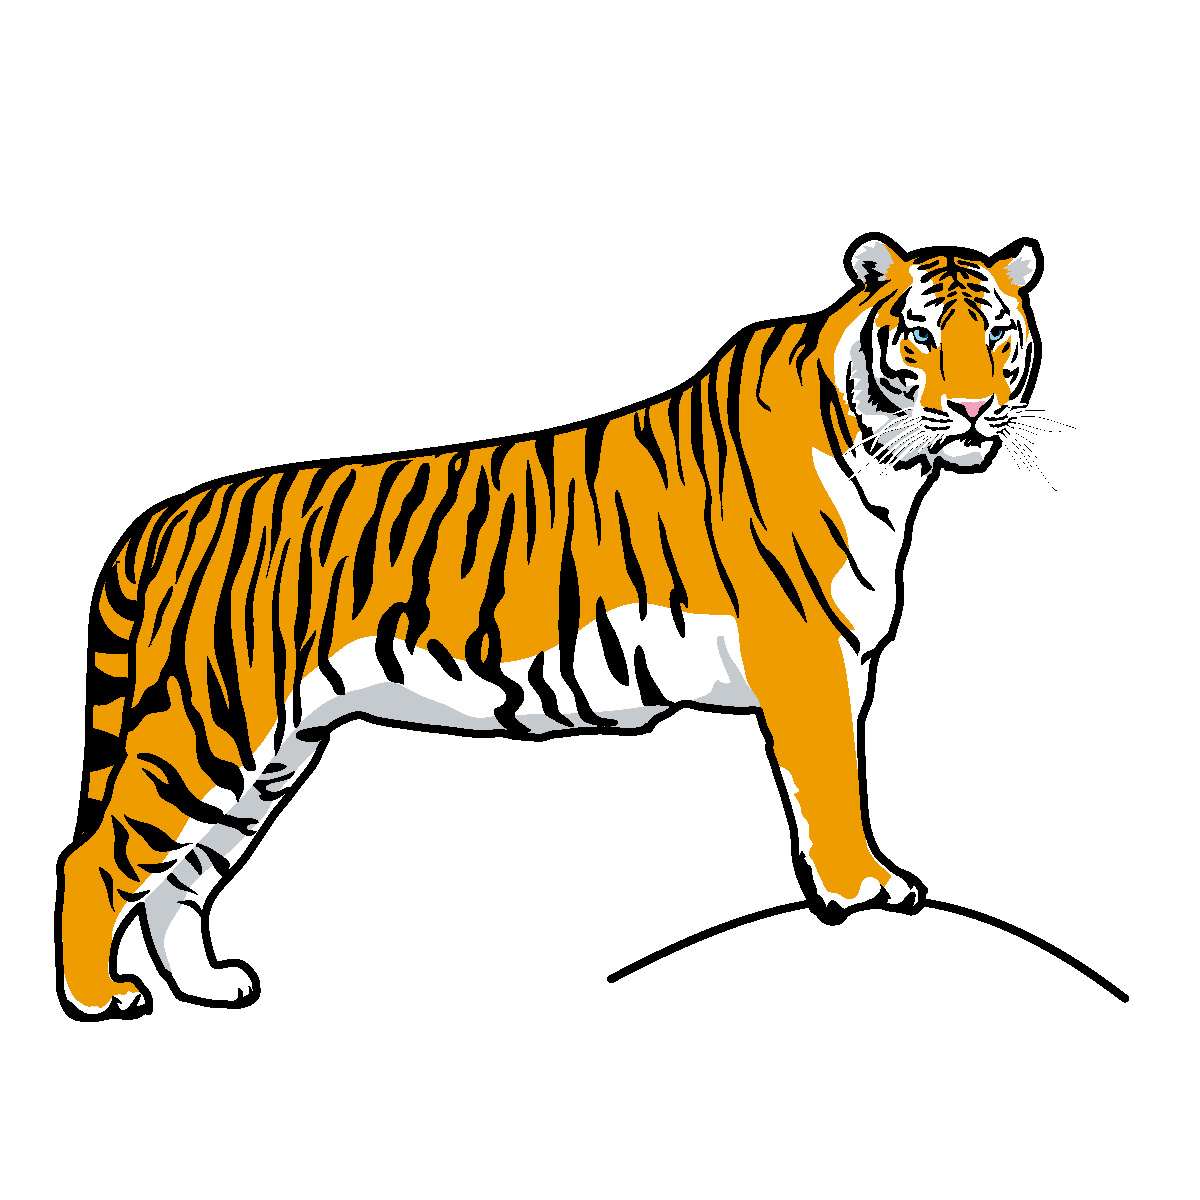 Tiger clipart #1, Download drawings